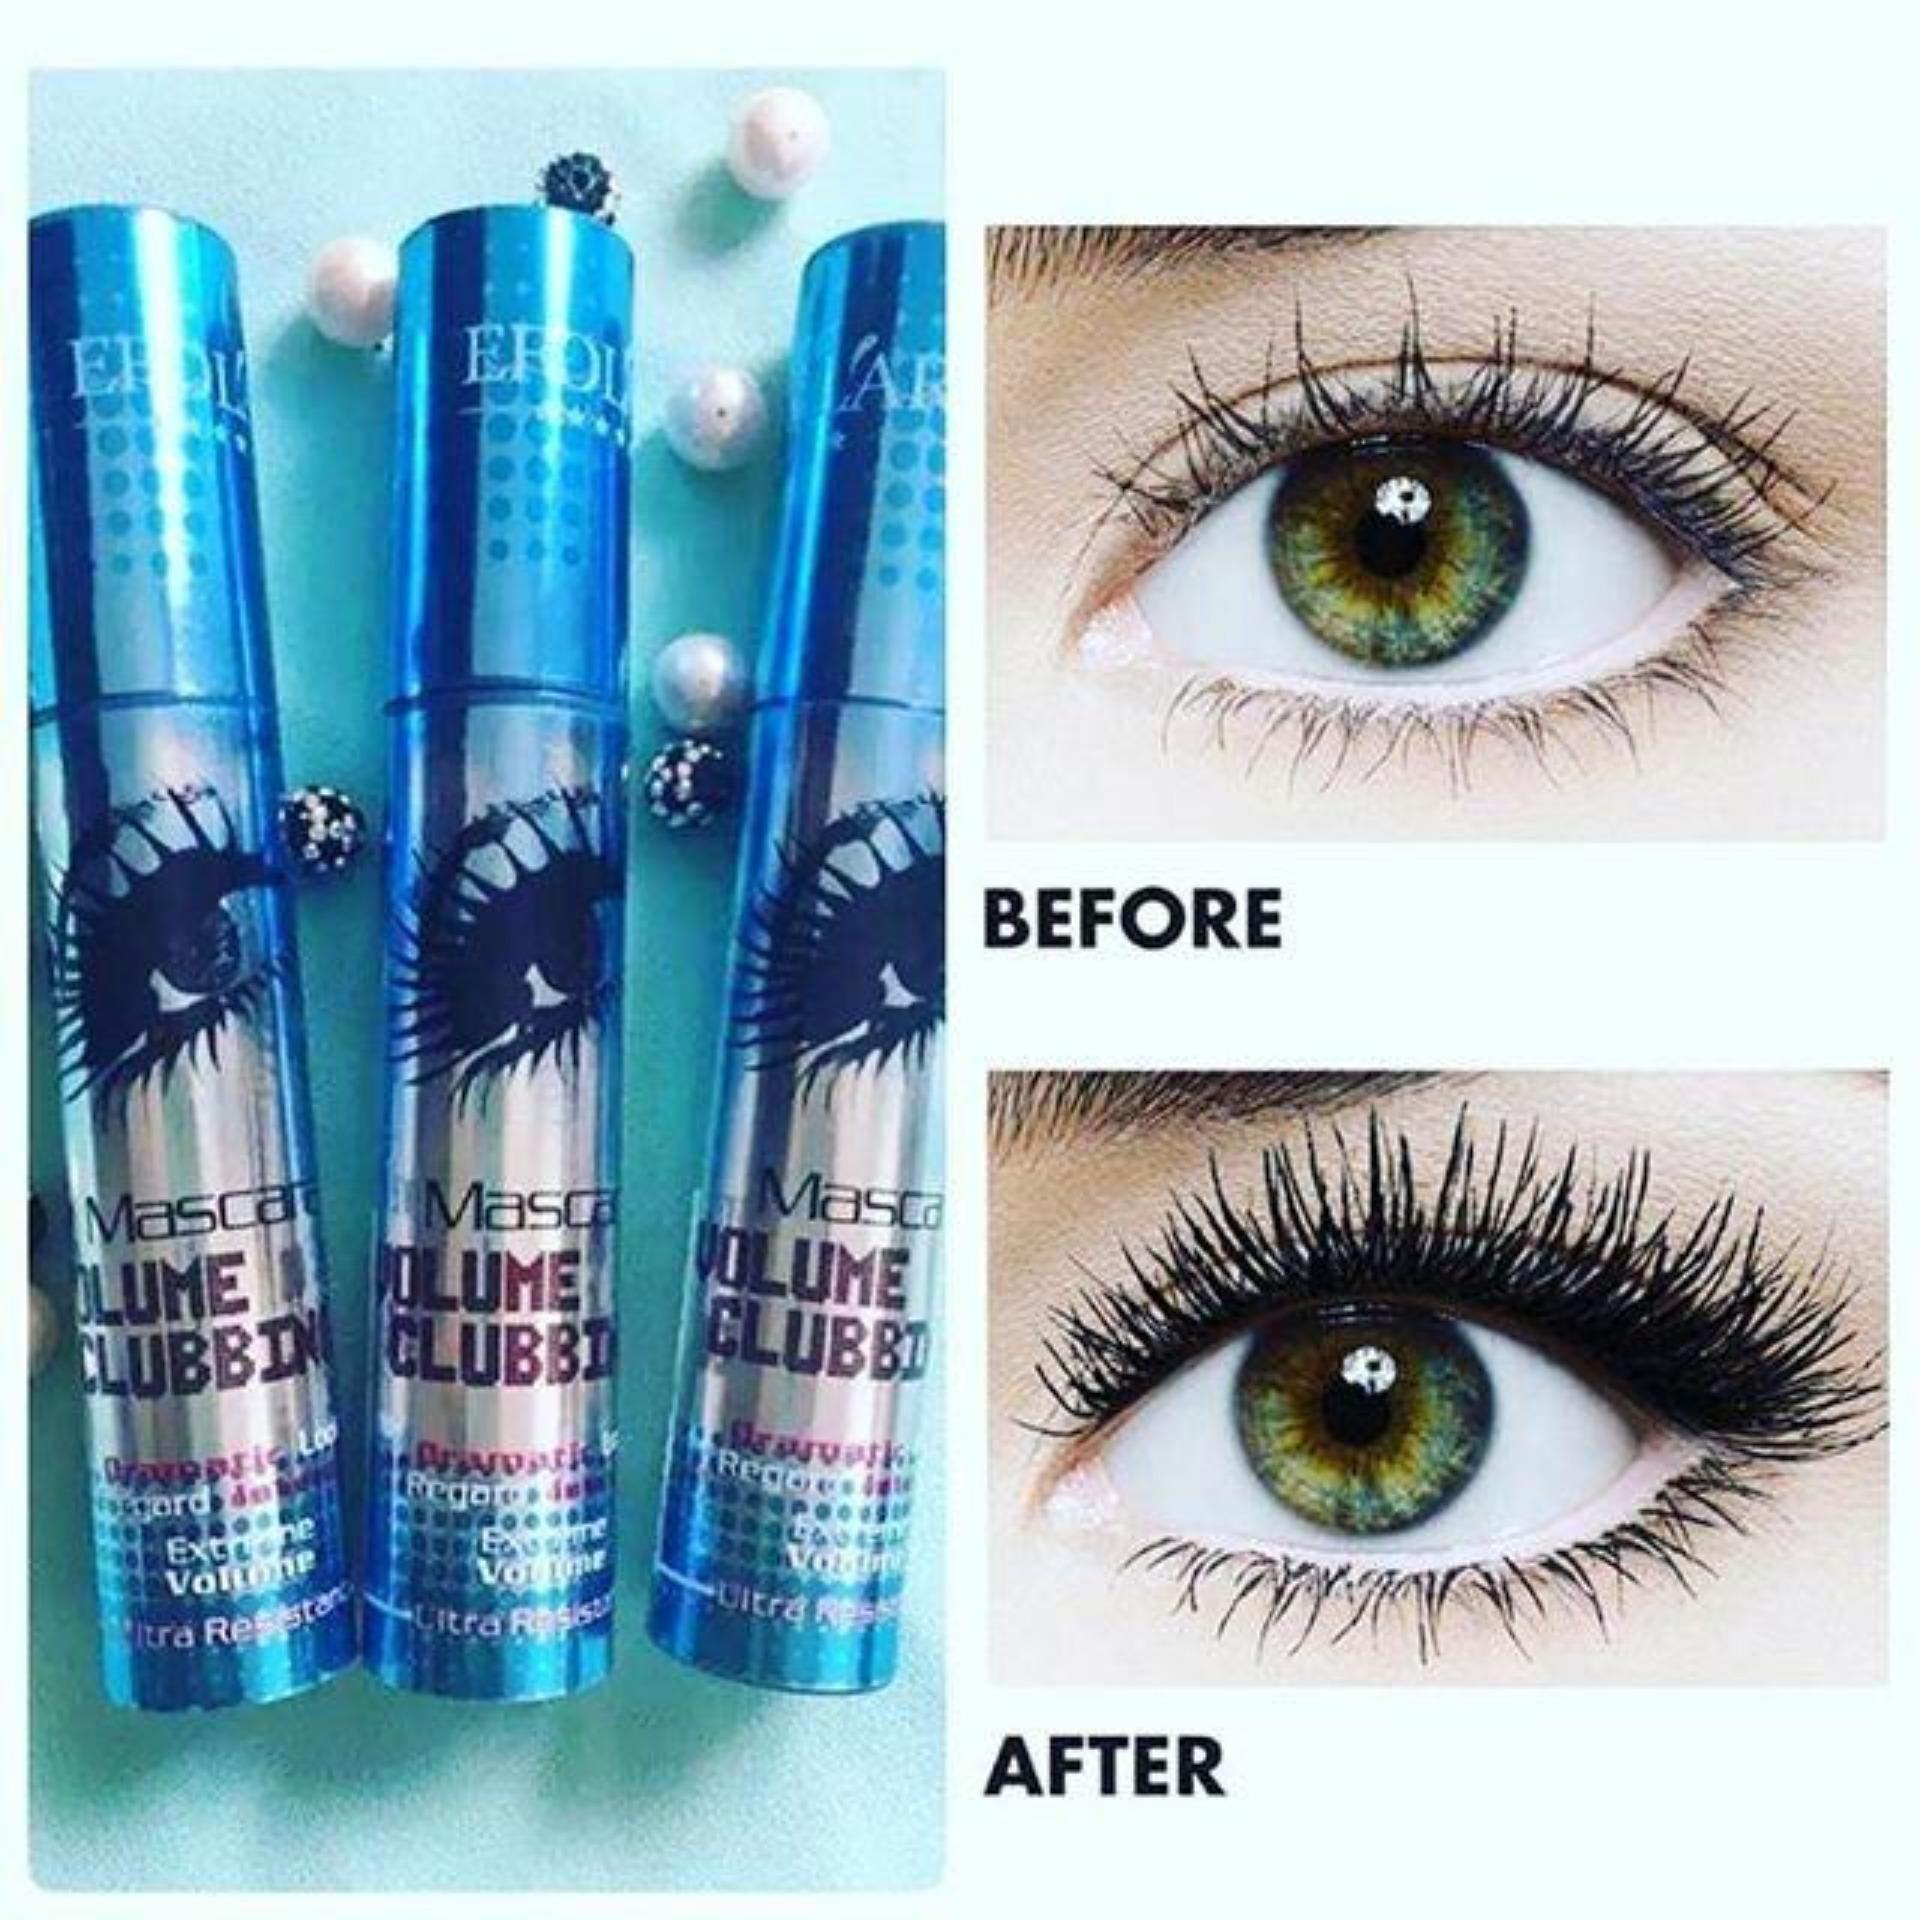 Pelacakan Harga Mascara Maskara Efolar Multiple Volume Clubbing Inez Lash Lengthening Black Waterproof Original